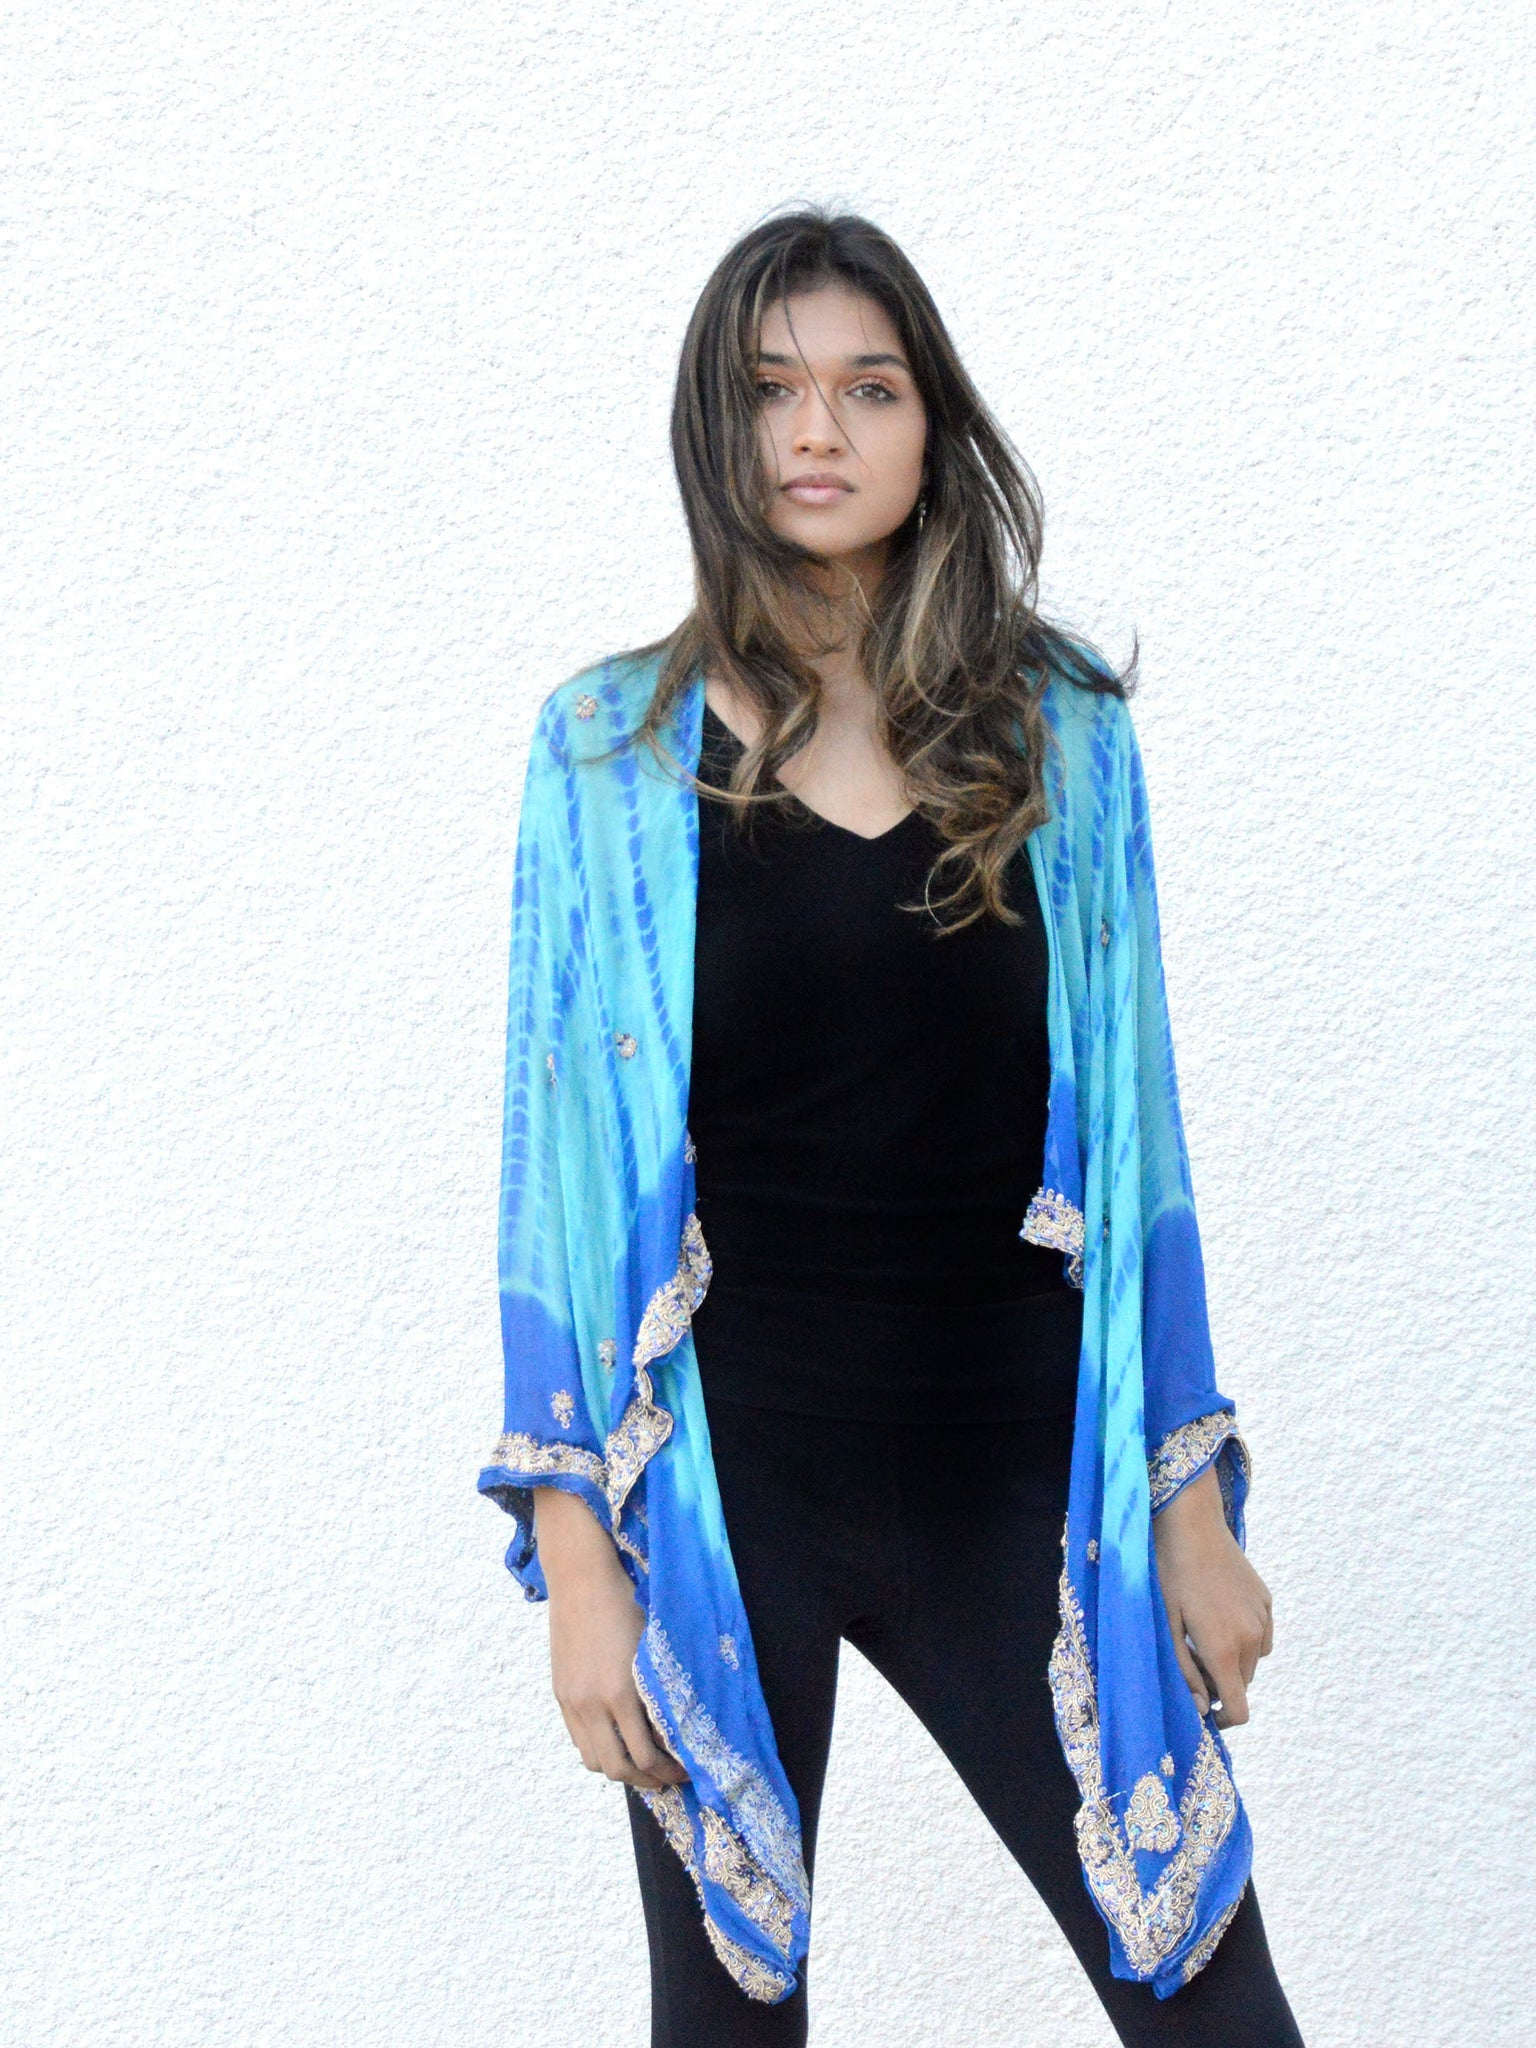 Model wearing light and dark blue silk chiffon kimono jacket with silver embroidery.